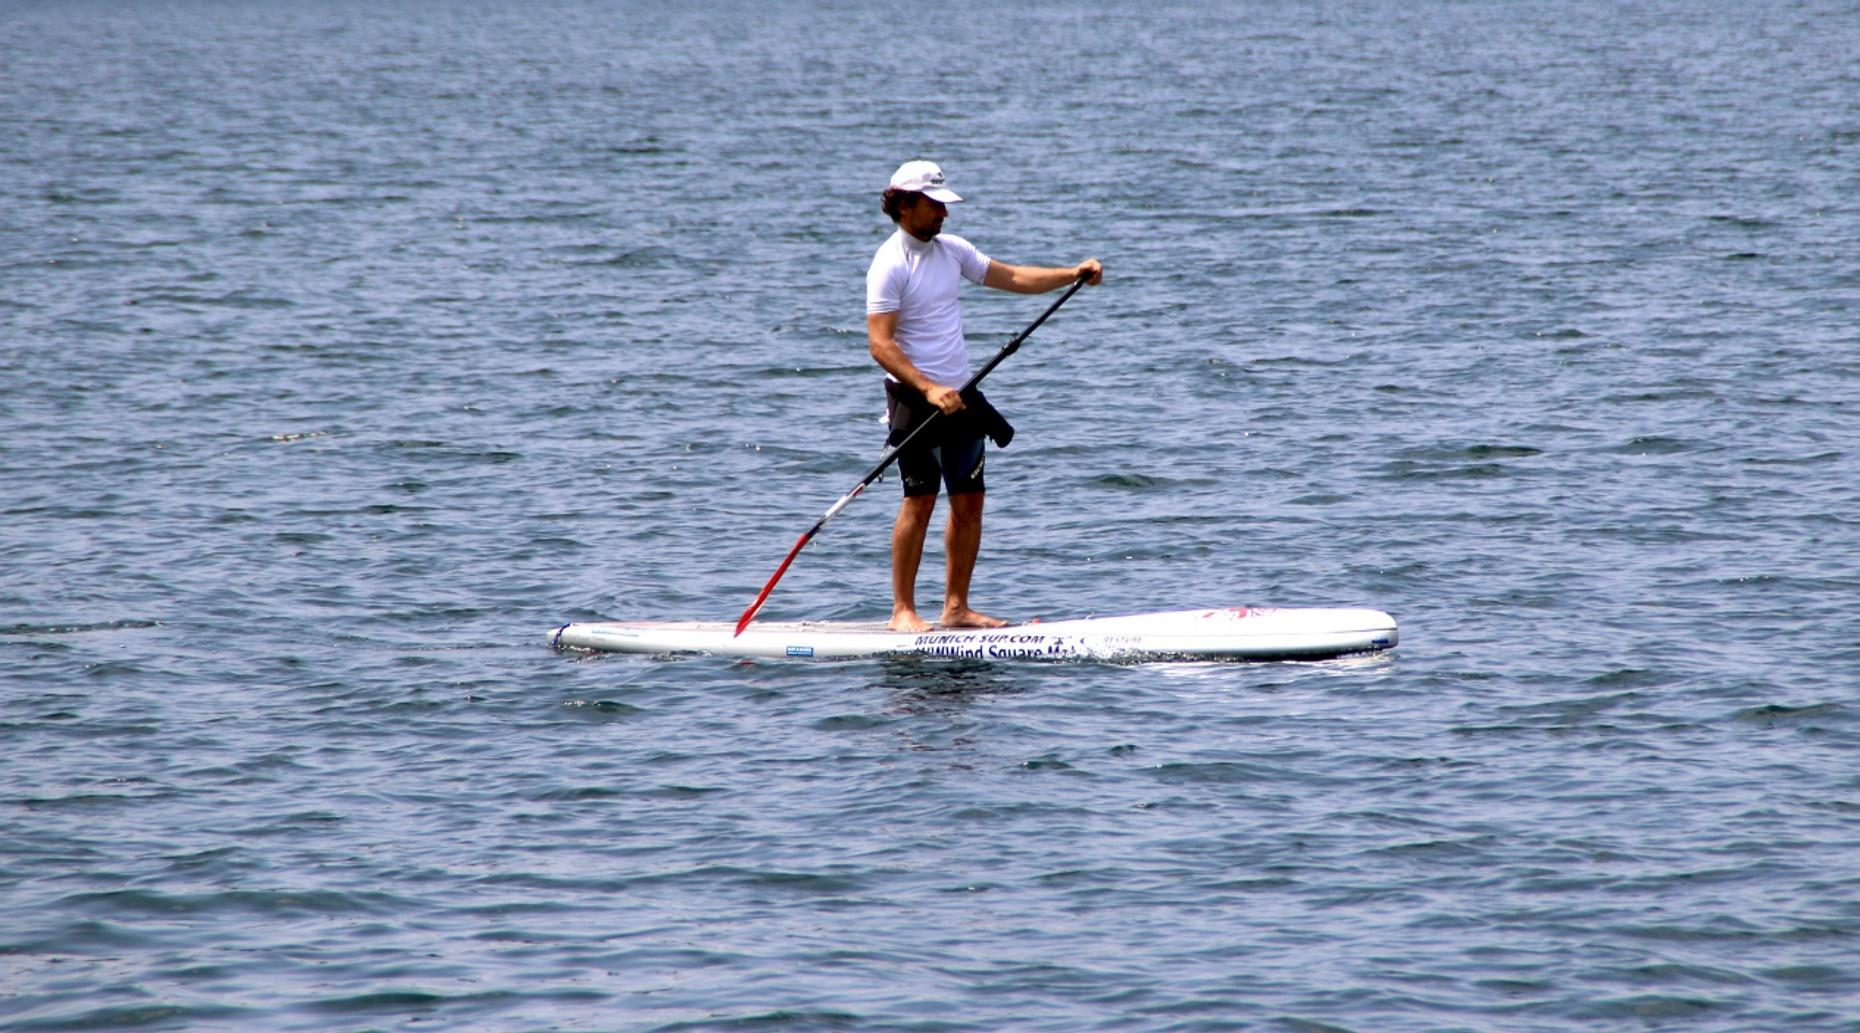 Hourly Stand-Up Paddleboard Rental in Cape May